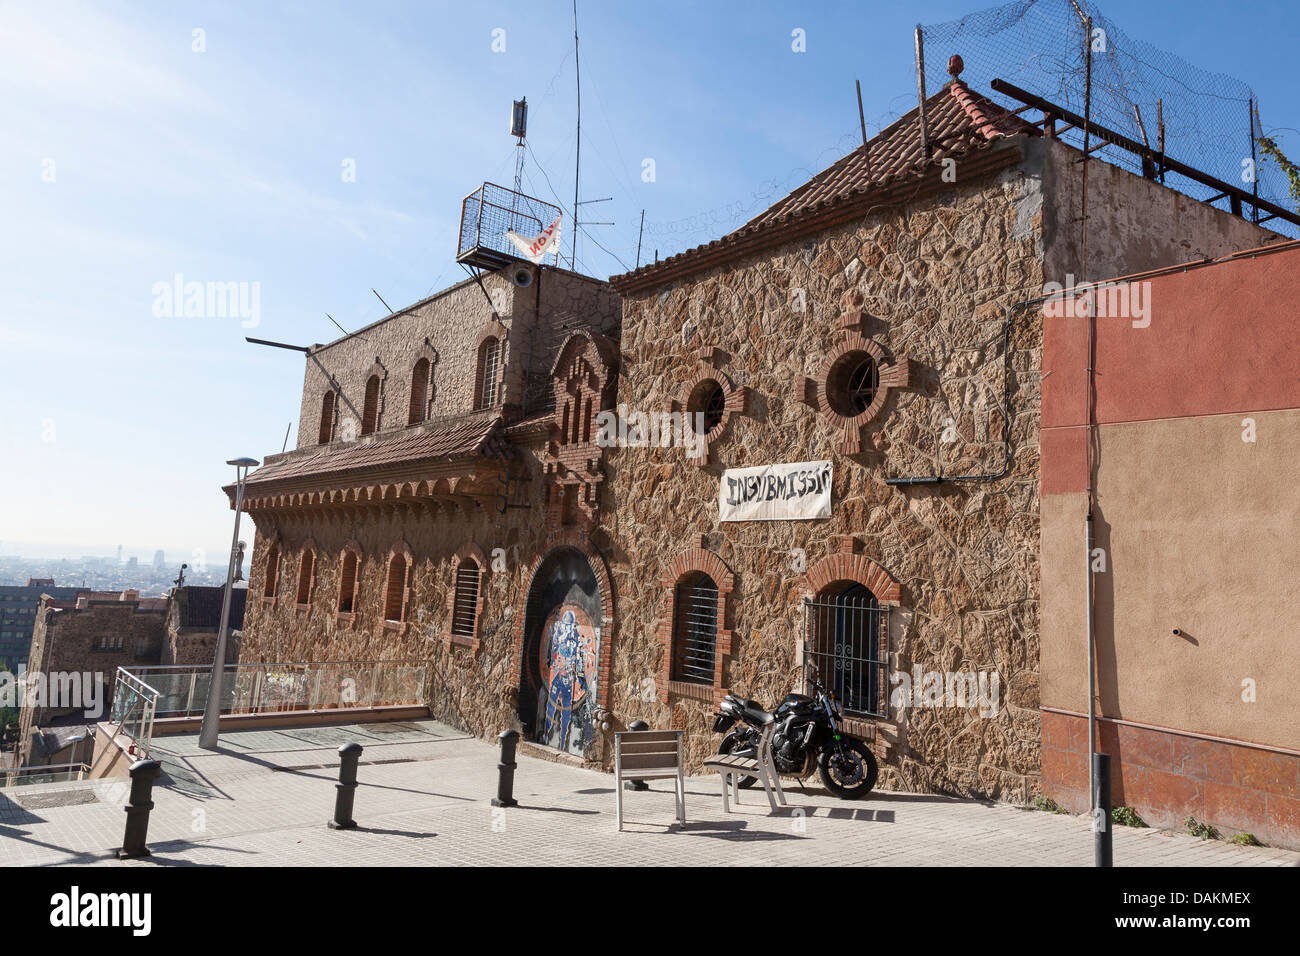 Building with banner in protest of government near Park Güell - Gràcia, Barcelona, Catalonia, Spain - Stock Image